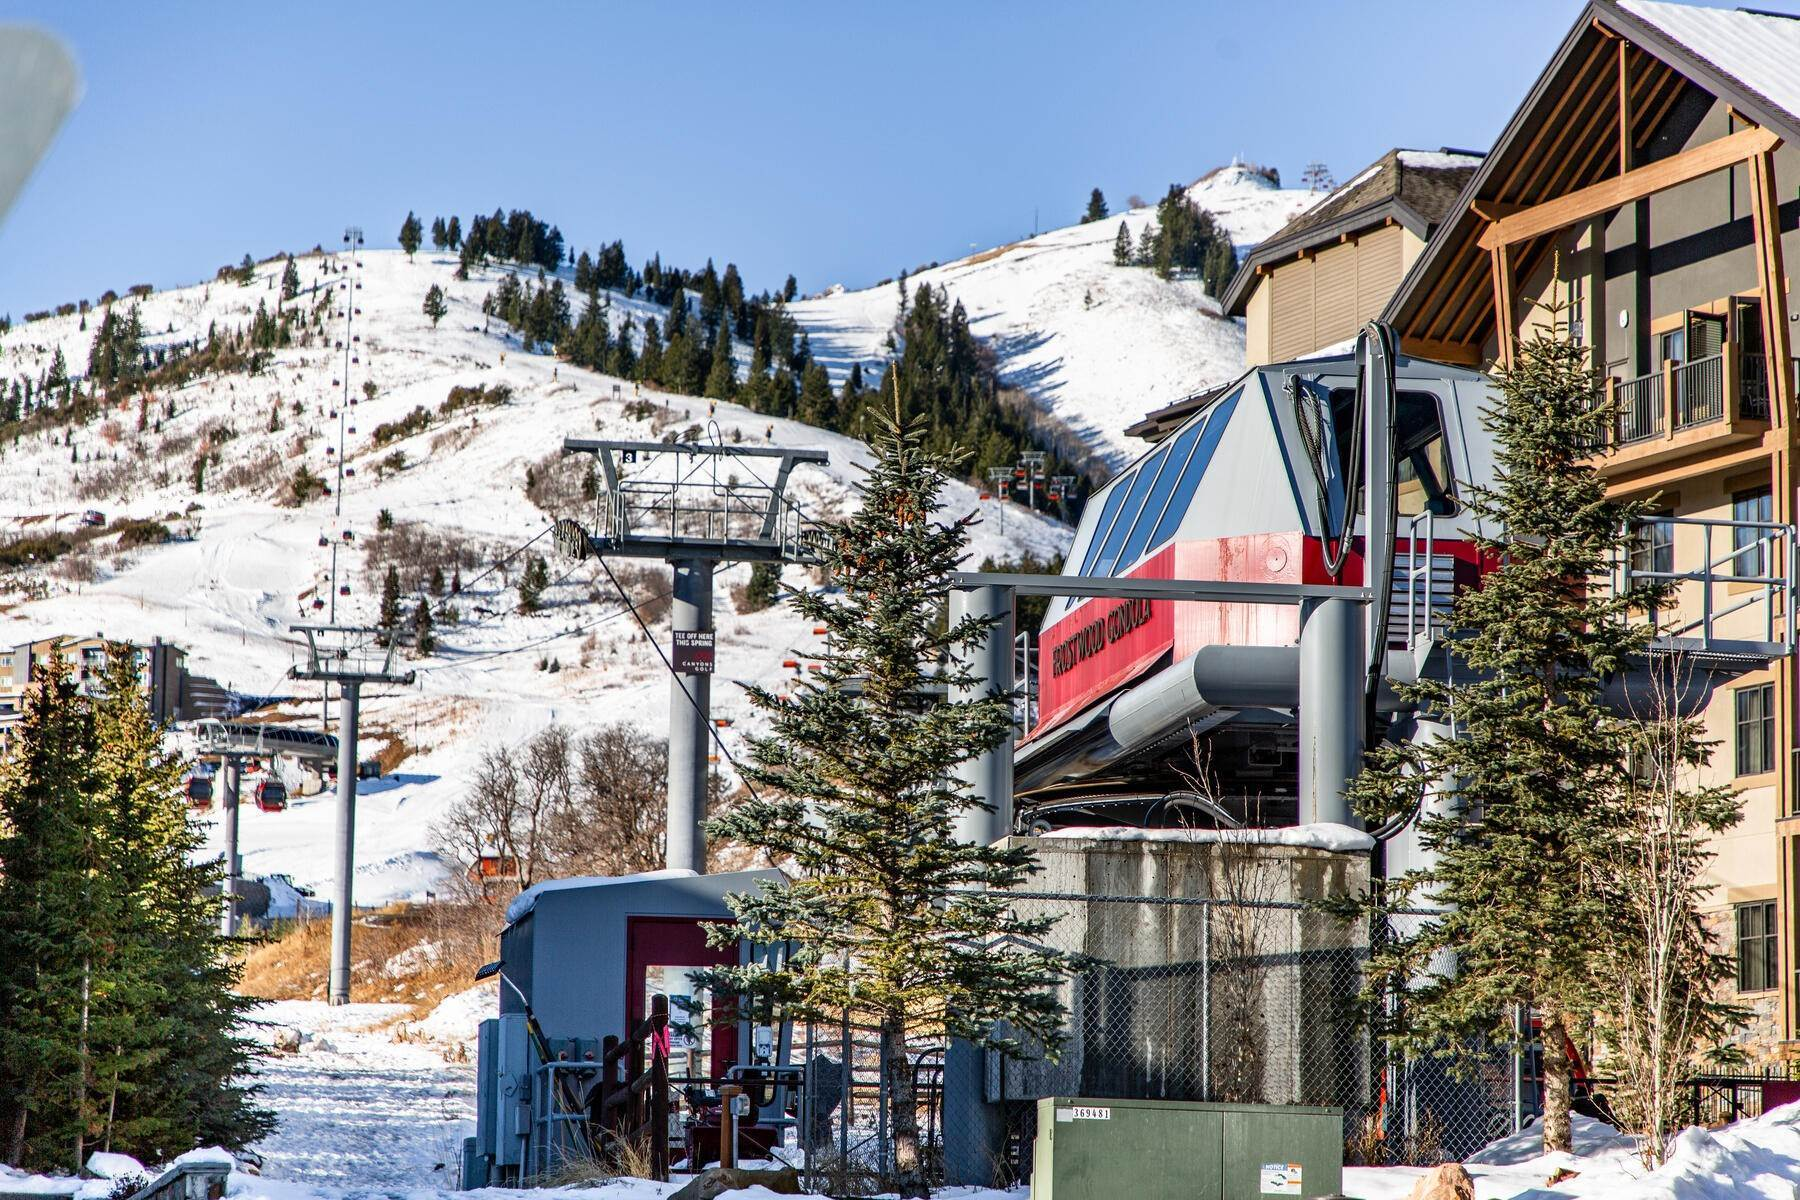 17. Condominiums for Sale at Introducing Park City's Newest Boutique Ski Hotel, The Ascent Park City! 4080 N Cooper Lane #312 Park City, Utah 84098 United States